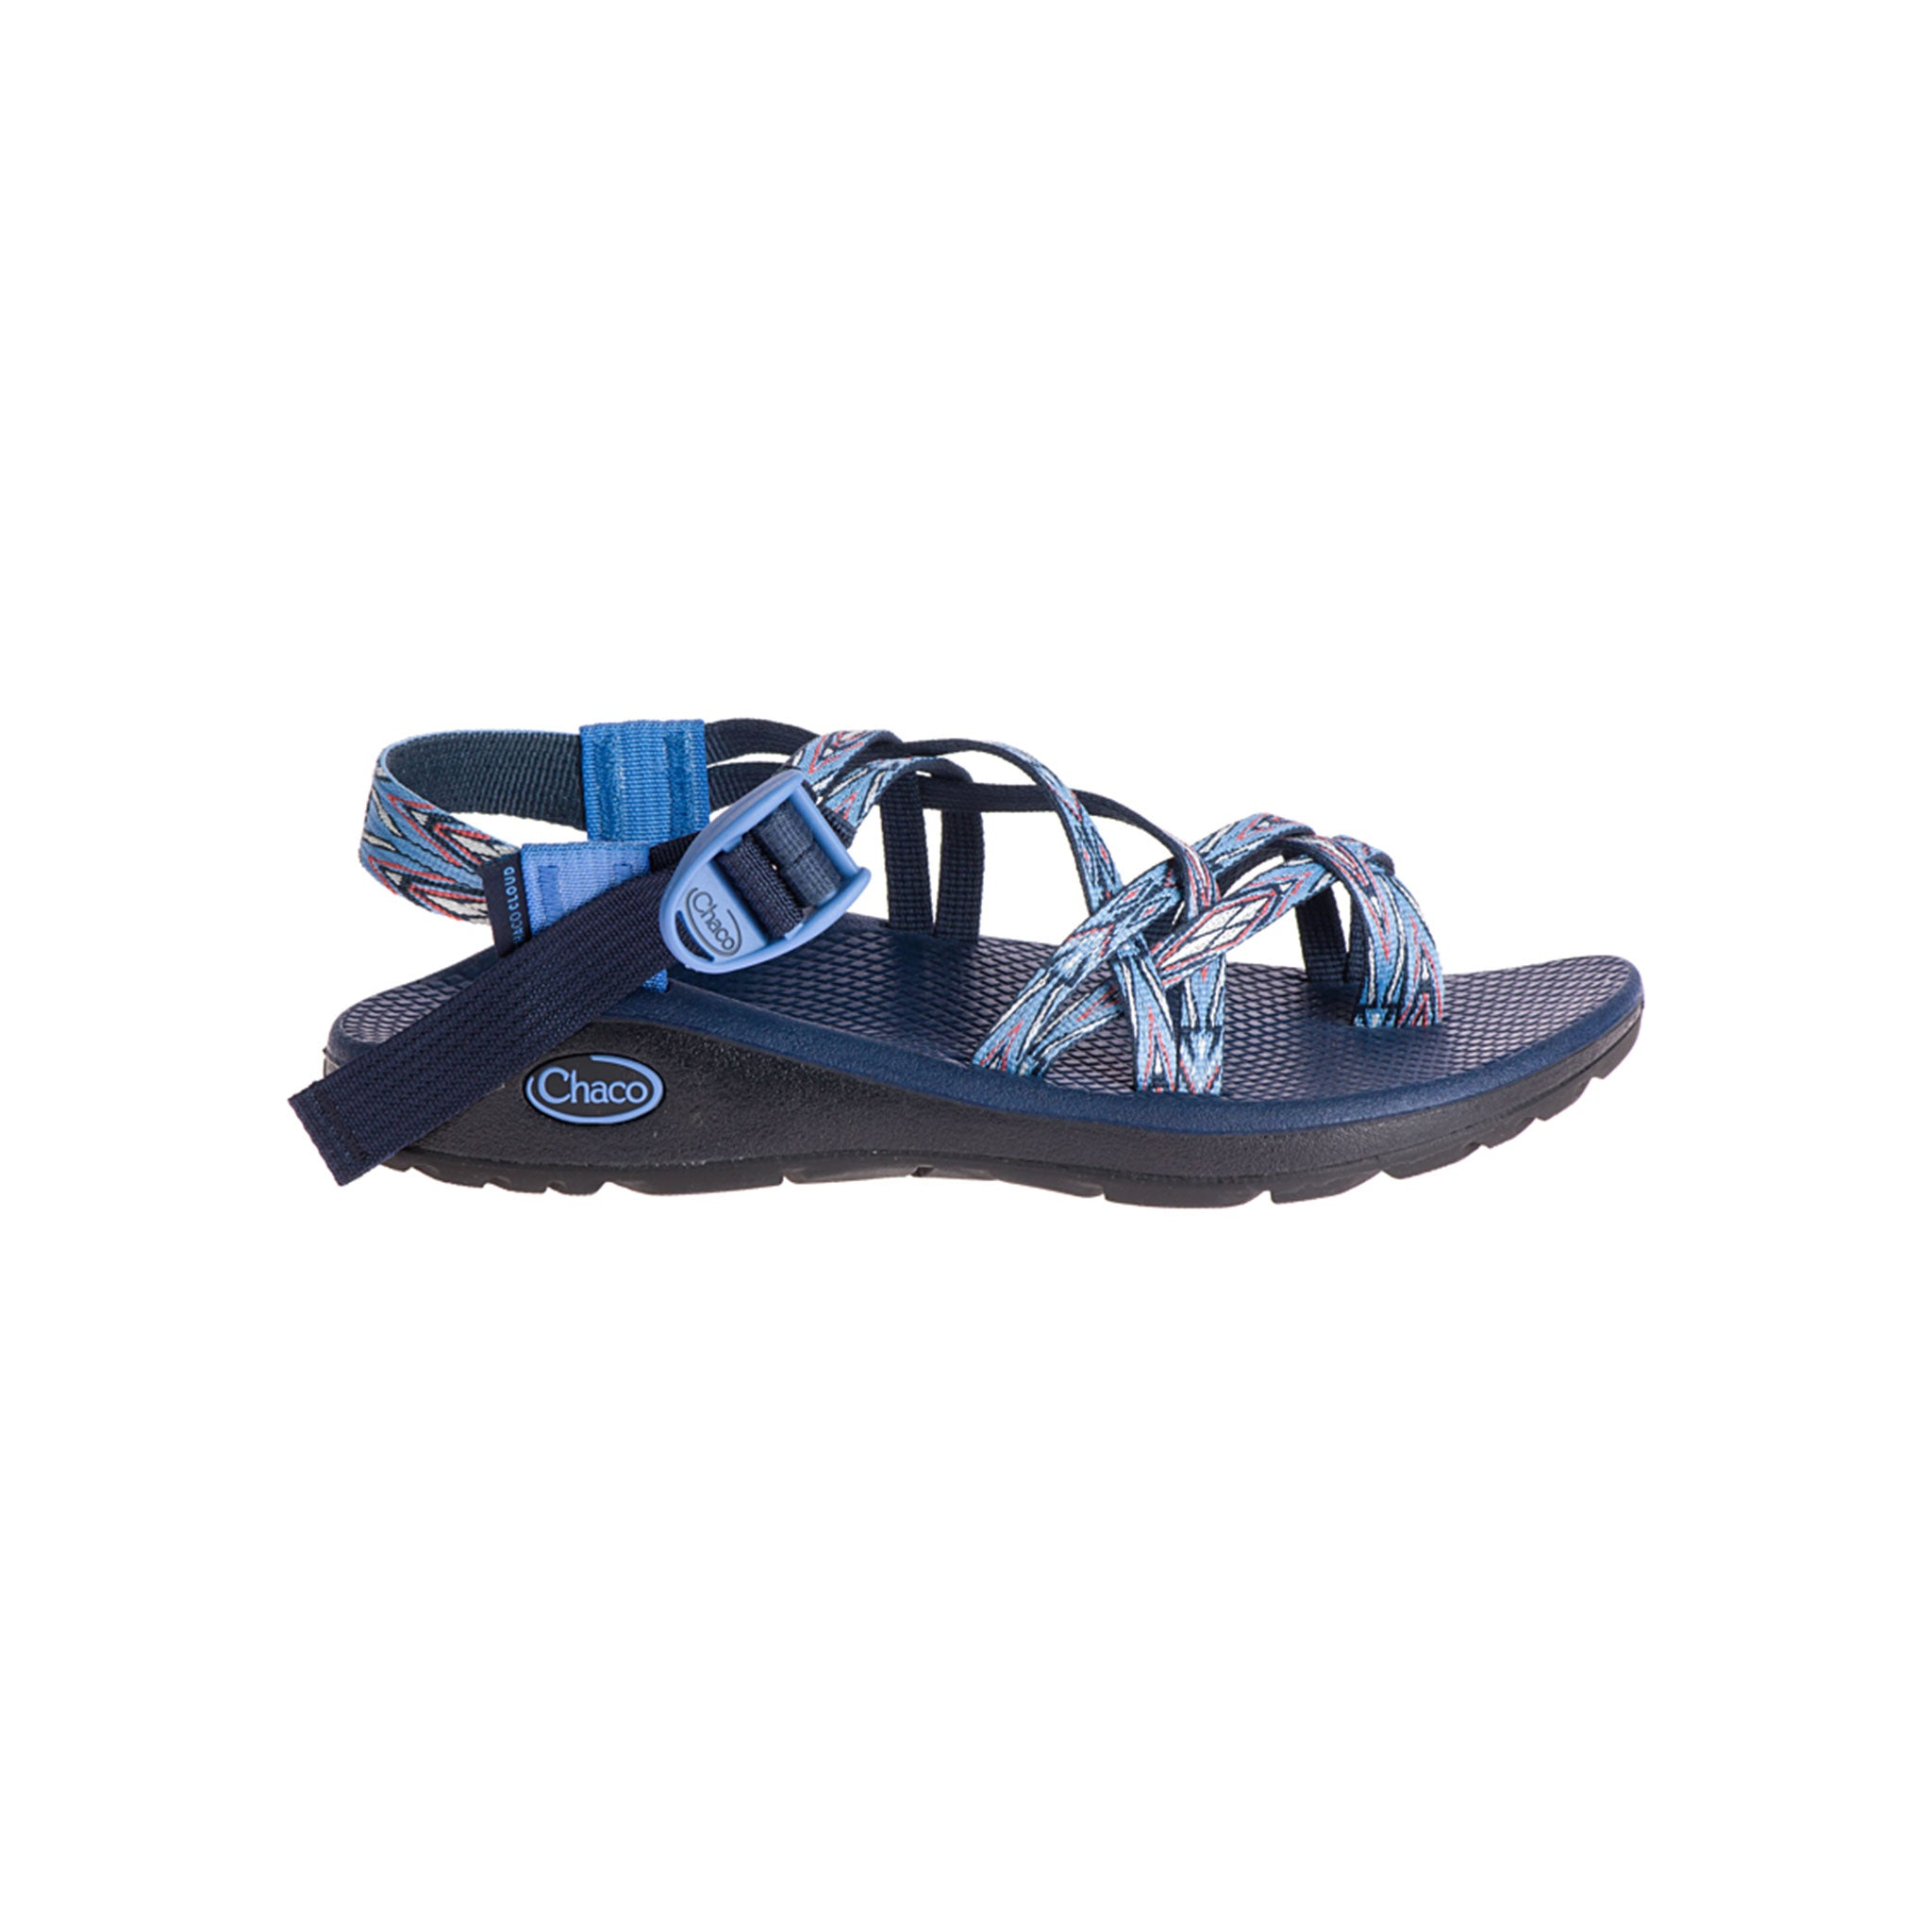 22516b9d219 New Arrivals Page 14 - Alpine Start Outfitters